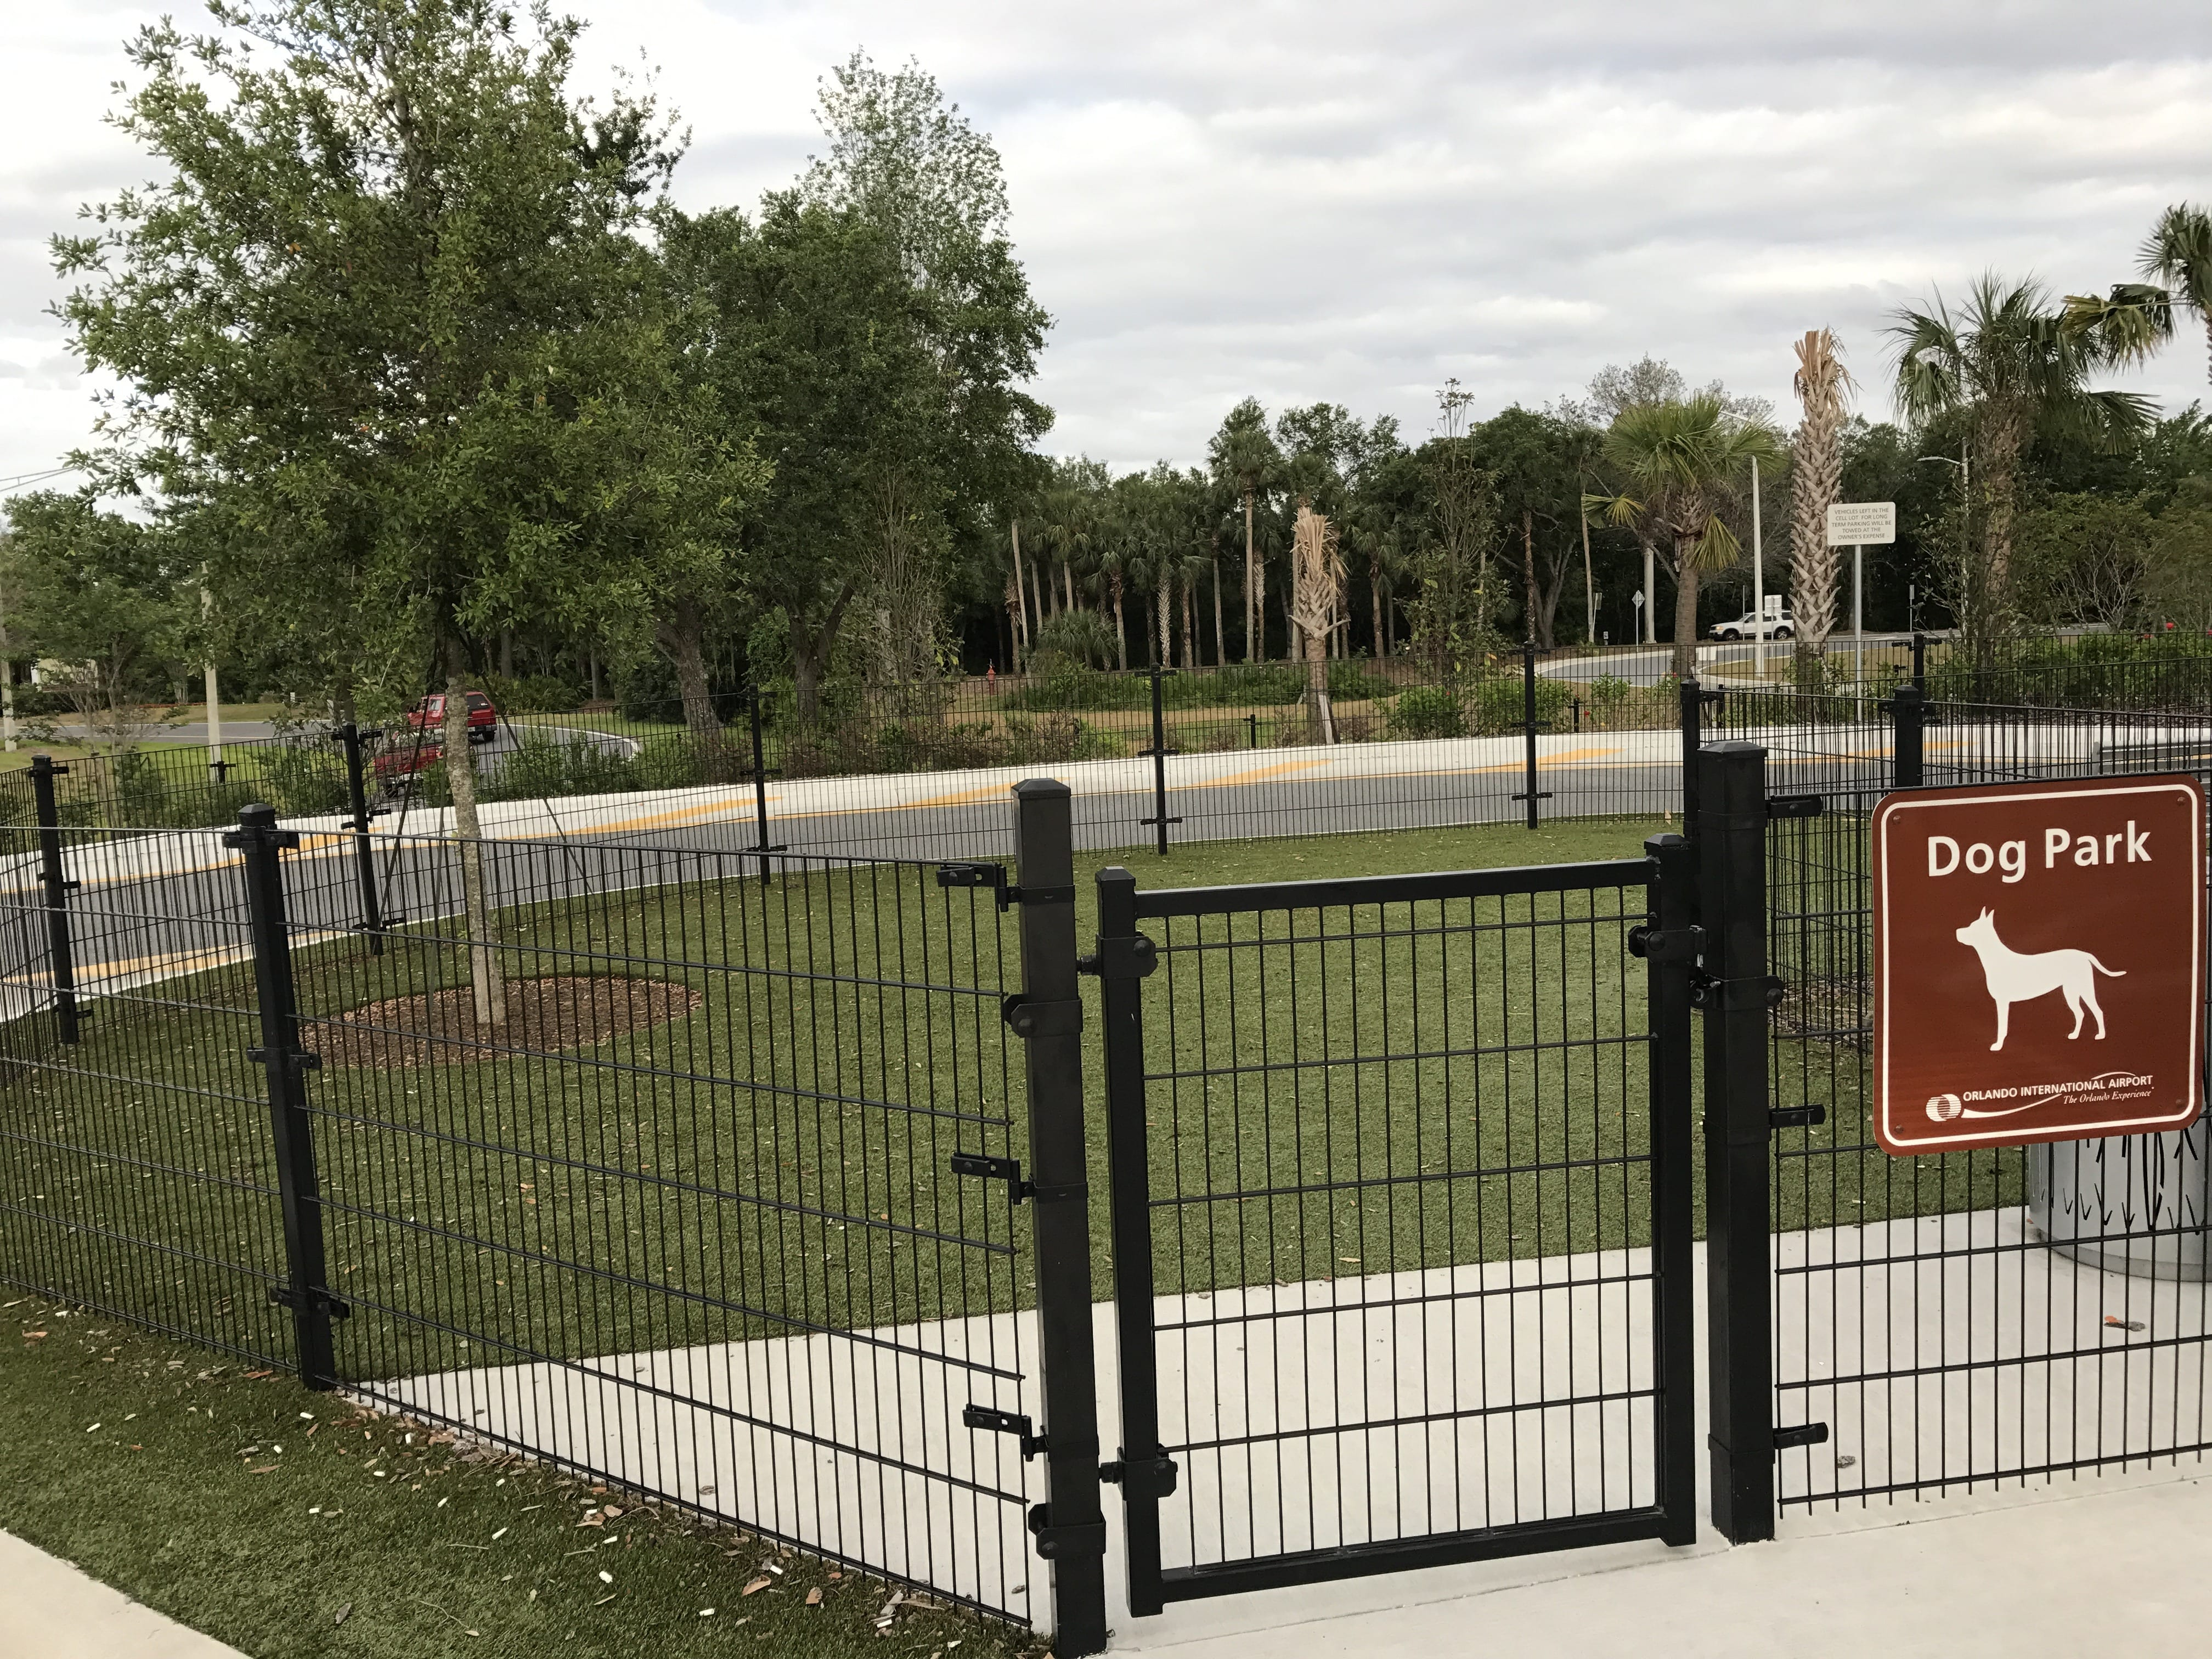 Orlando International Airport Dog Park with K9Grass""